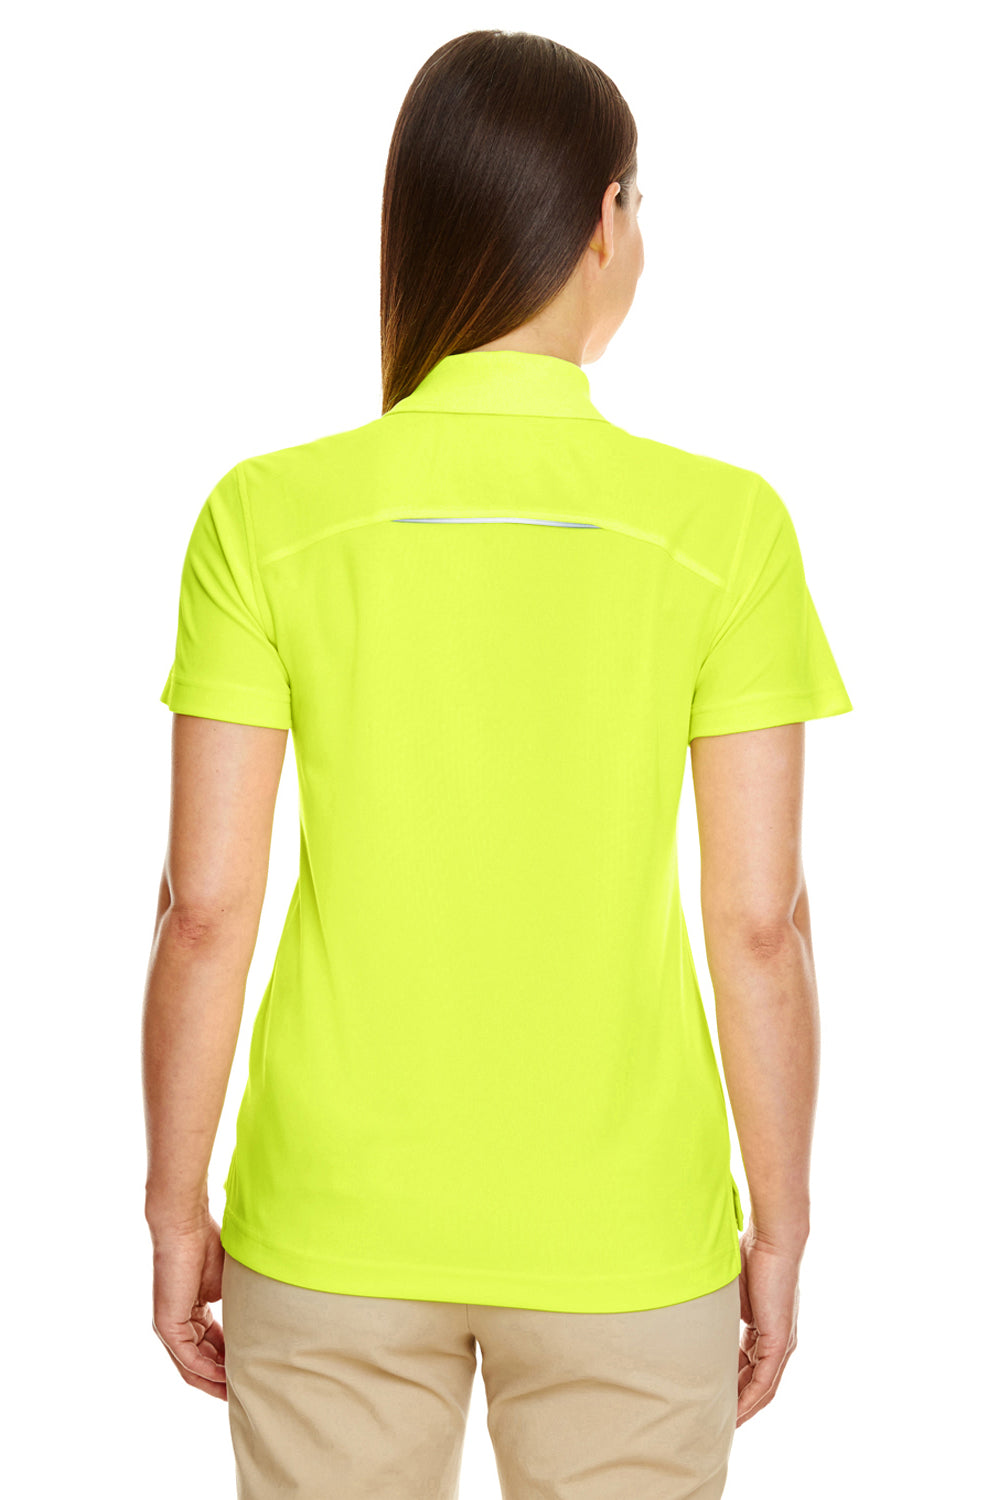 Core 365 78181R Womens Radiant Performance Moisture Wicking Short Sleeve Polo Shirt Safety Yellow Back